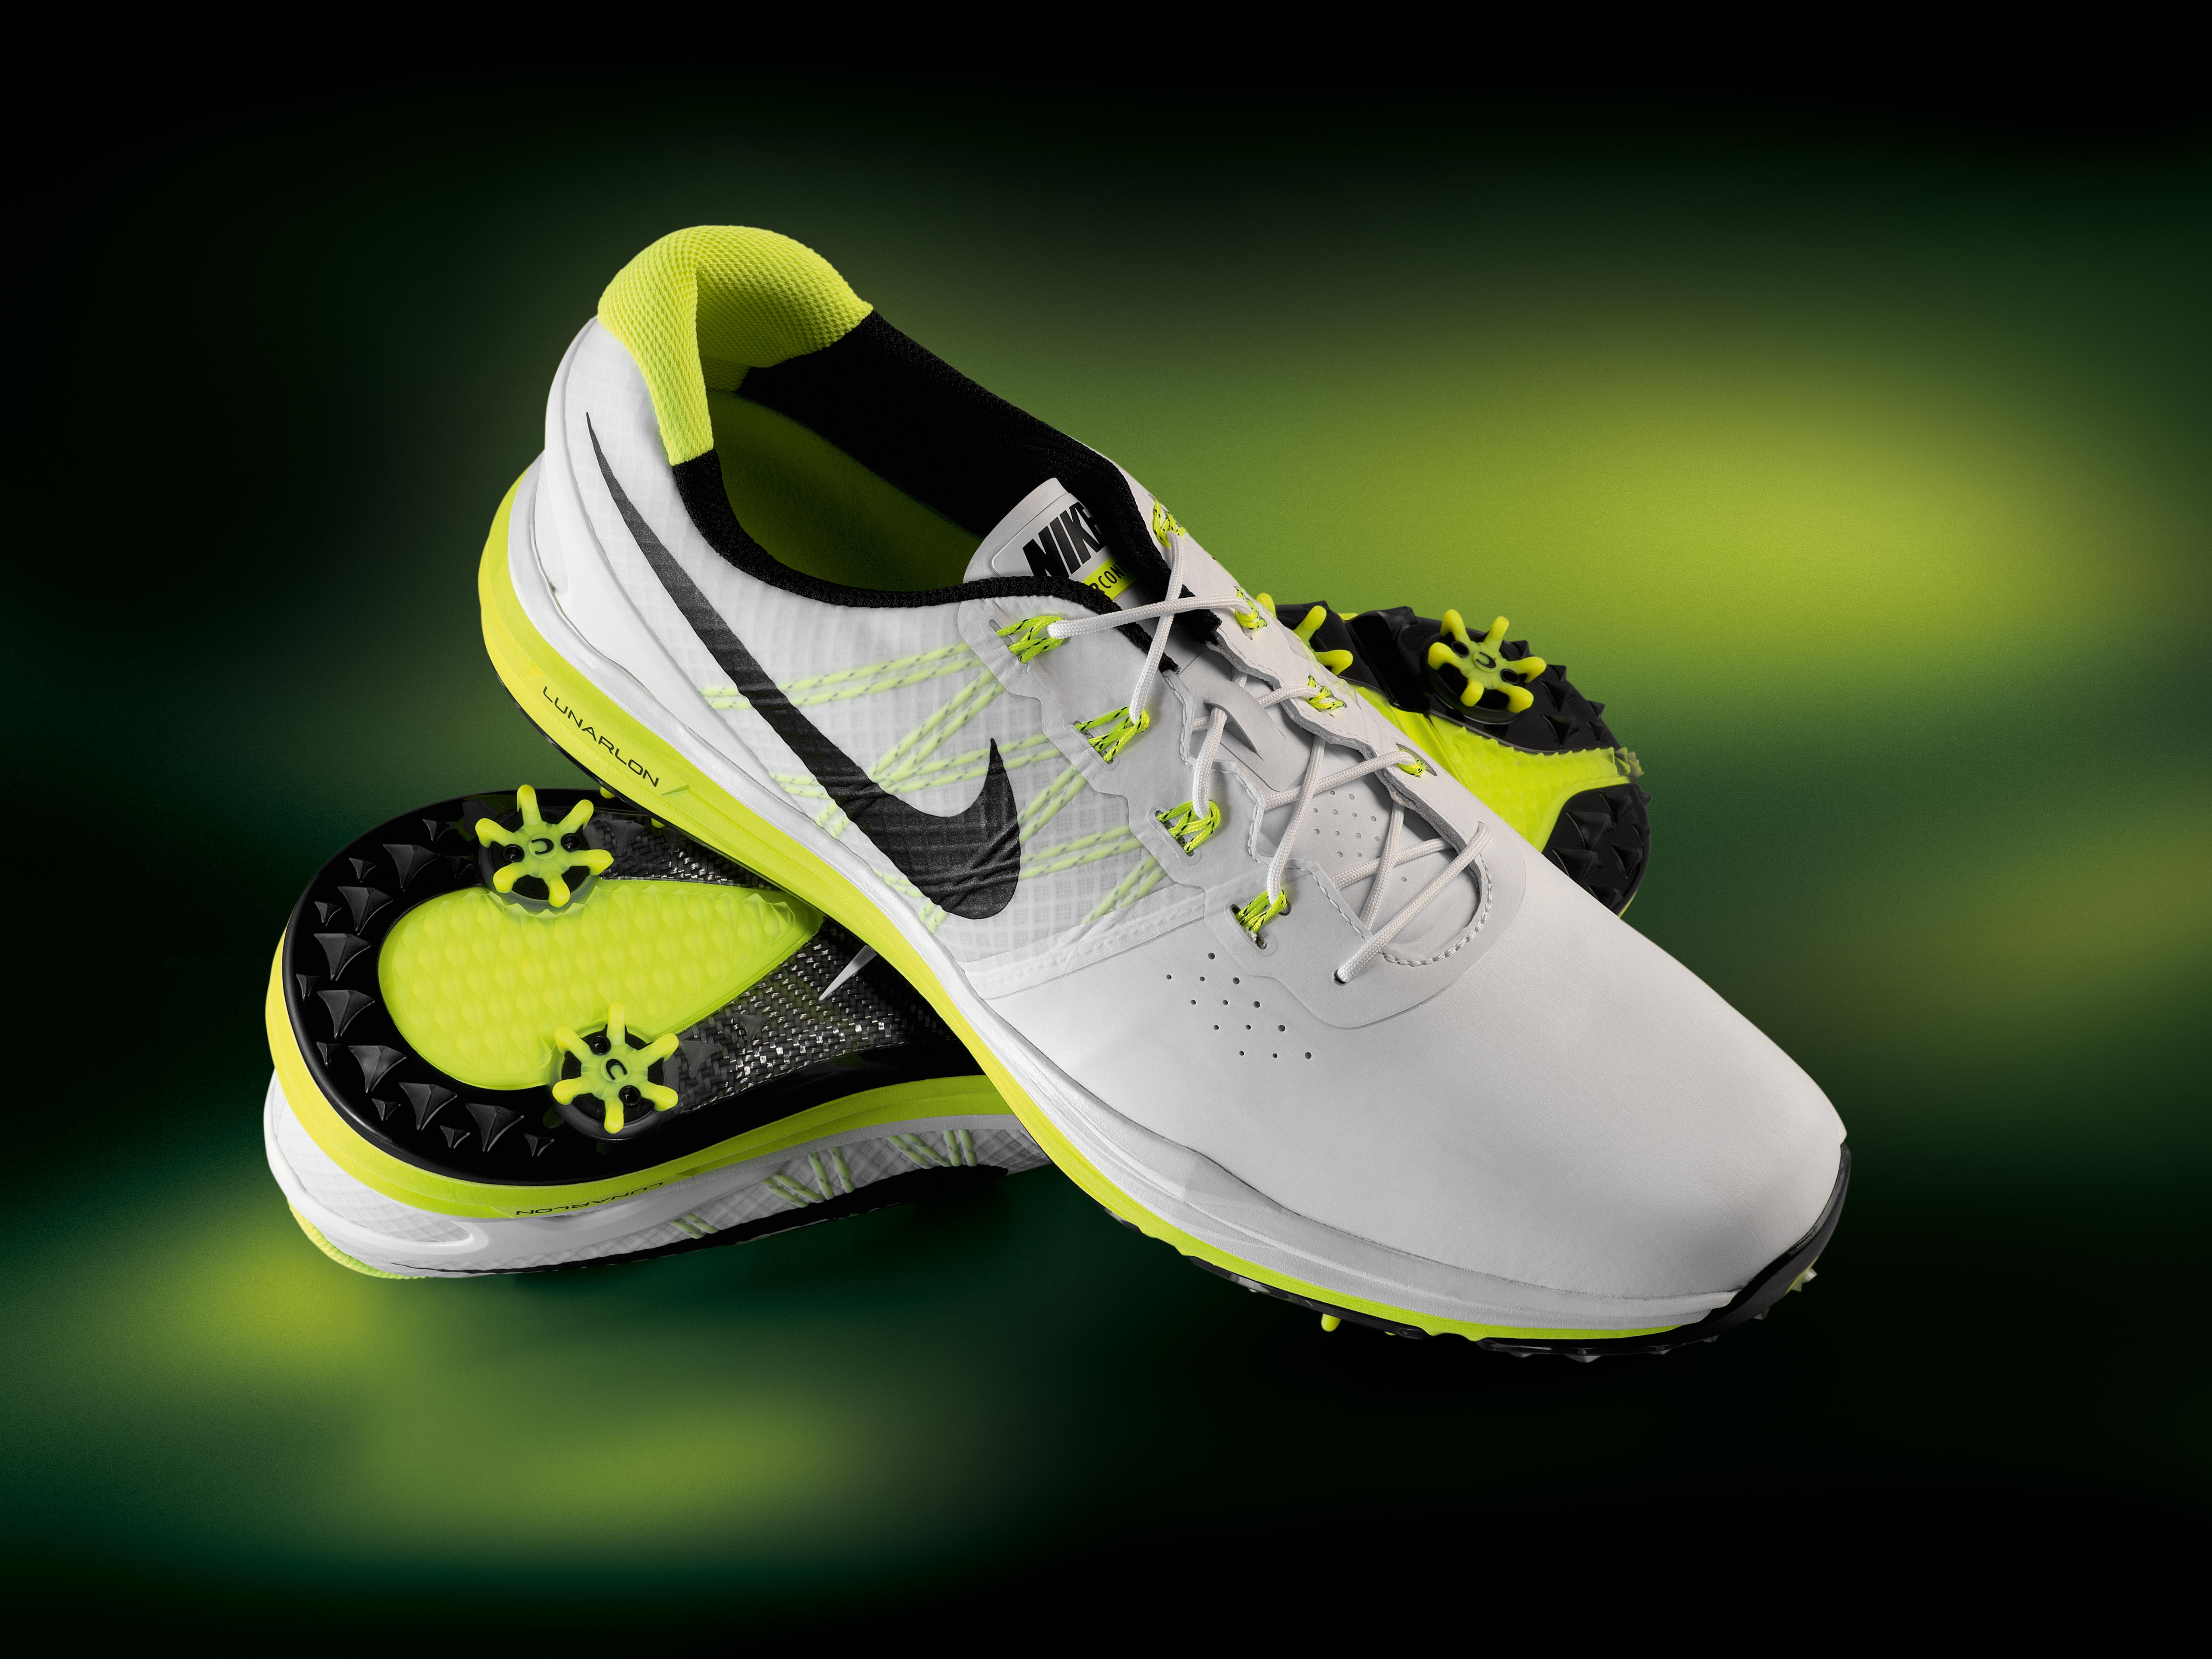 928d1e2b713f Nike Lunar Control 3 shoe review